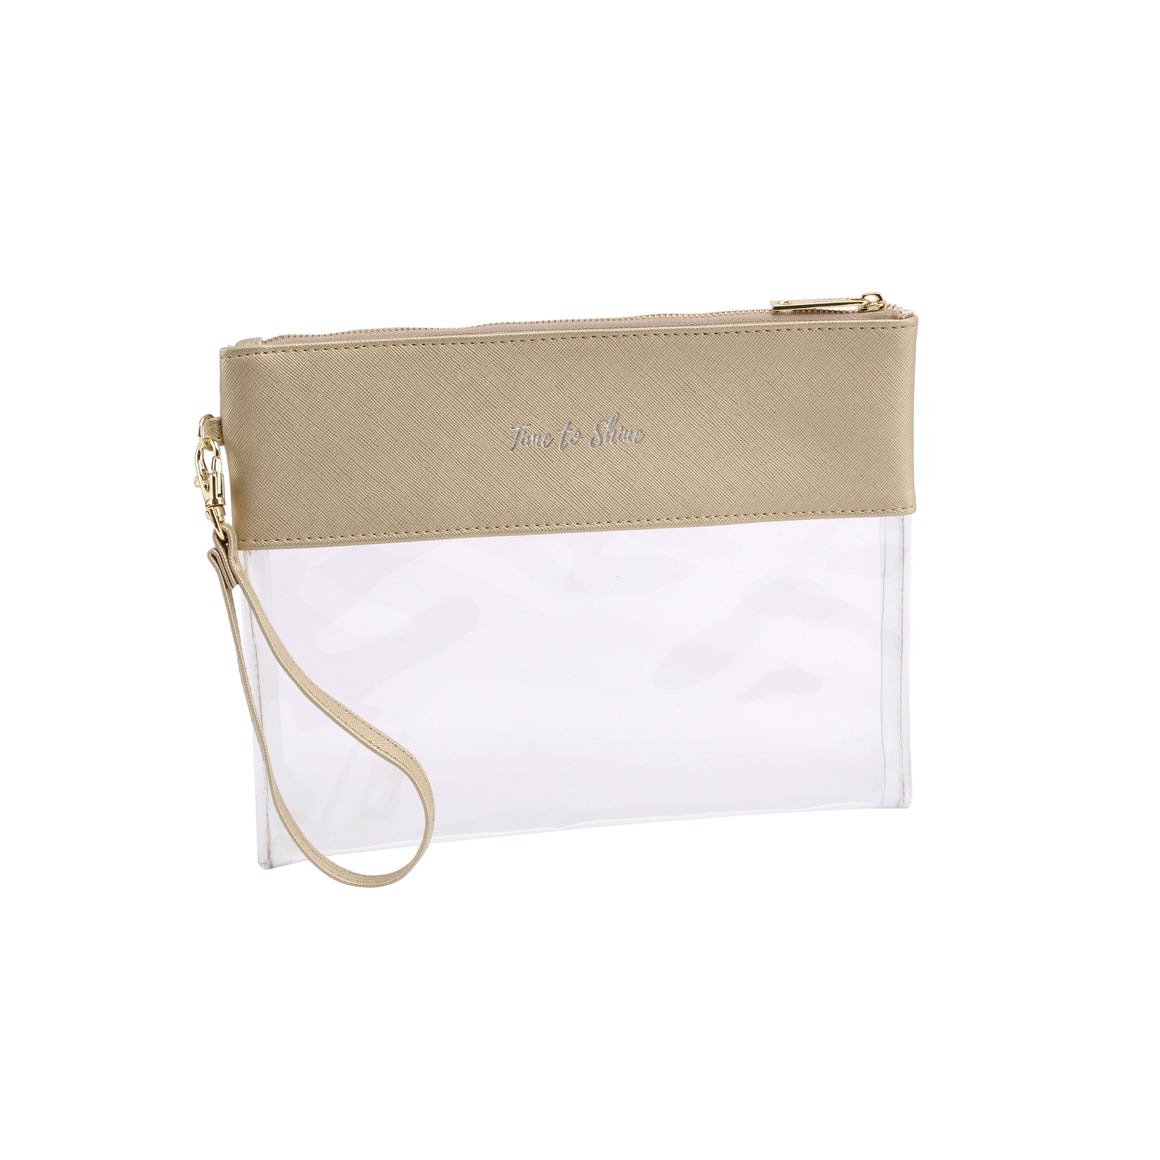 Willow & Rose Gold 'Time To Shine' Travel Pouch